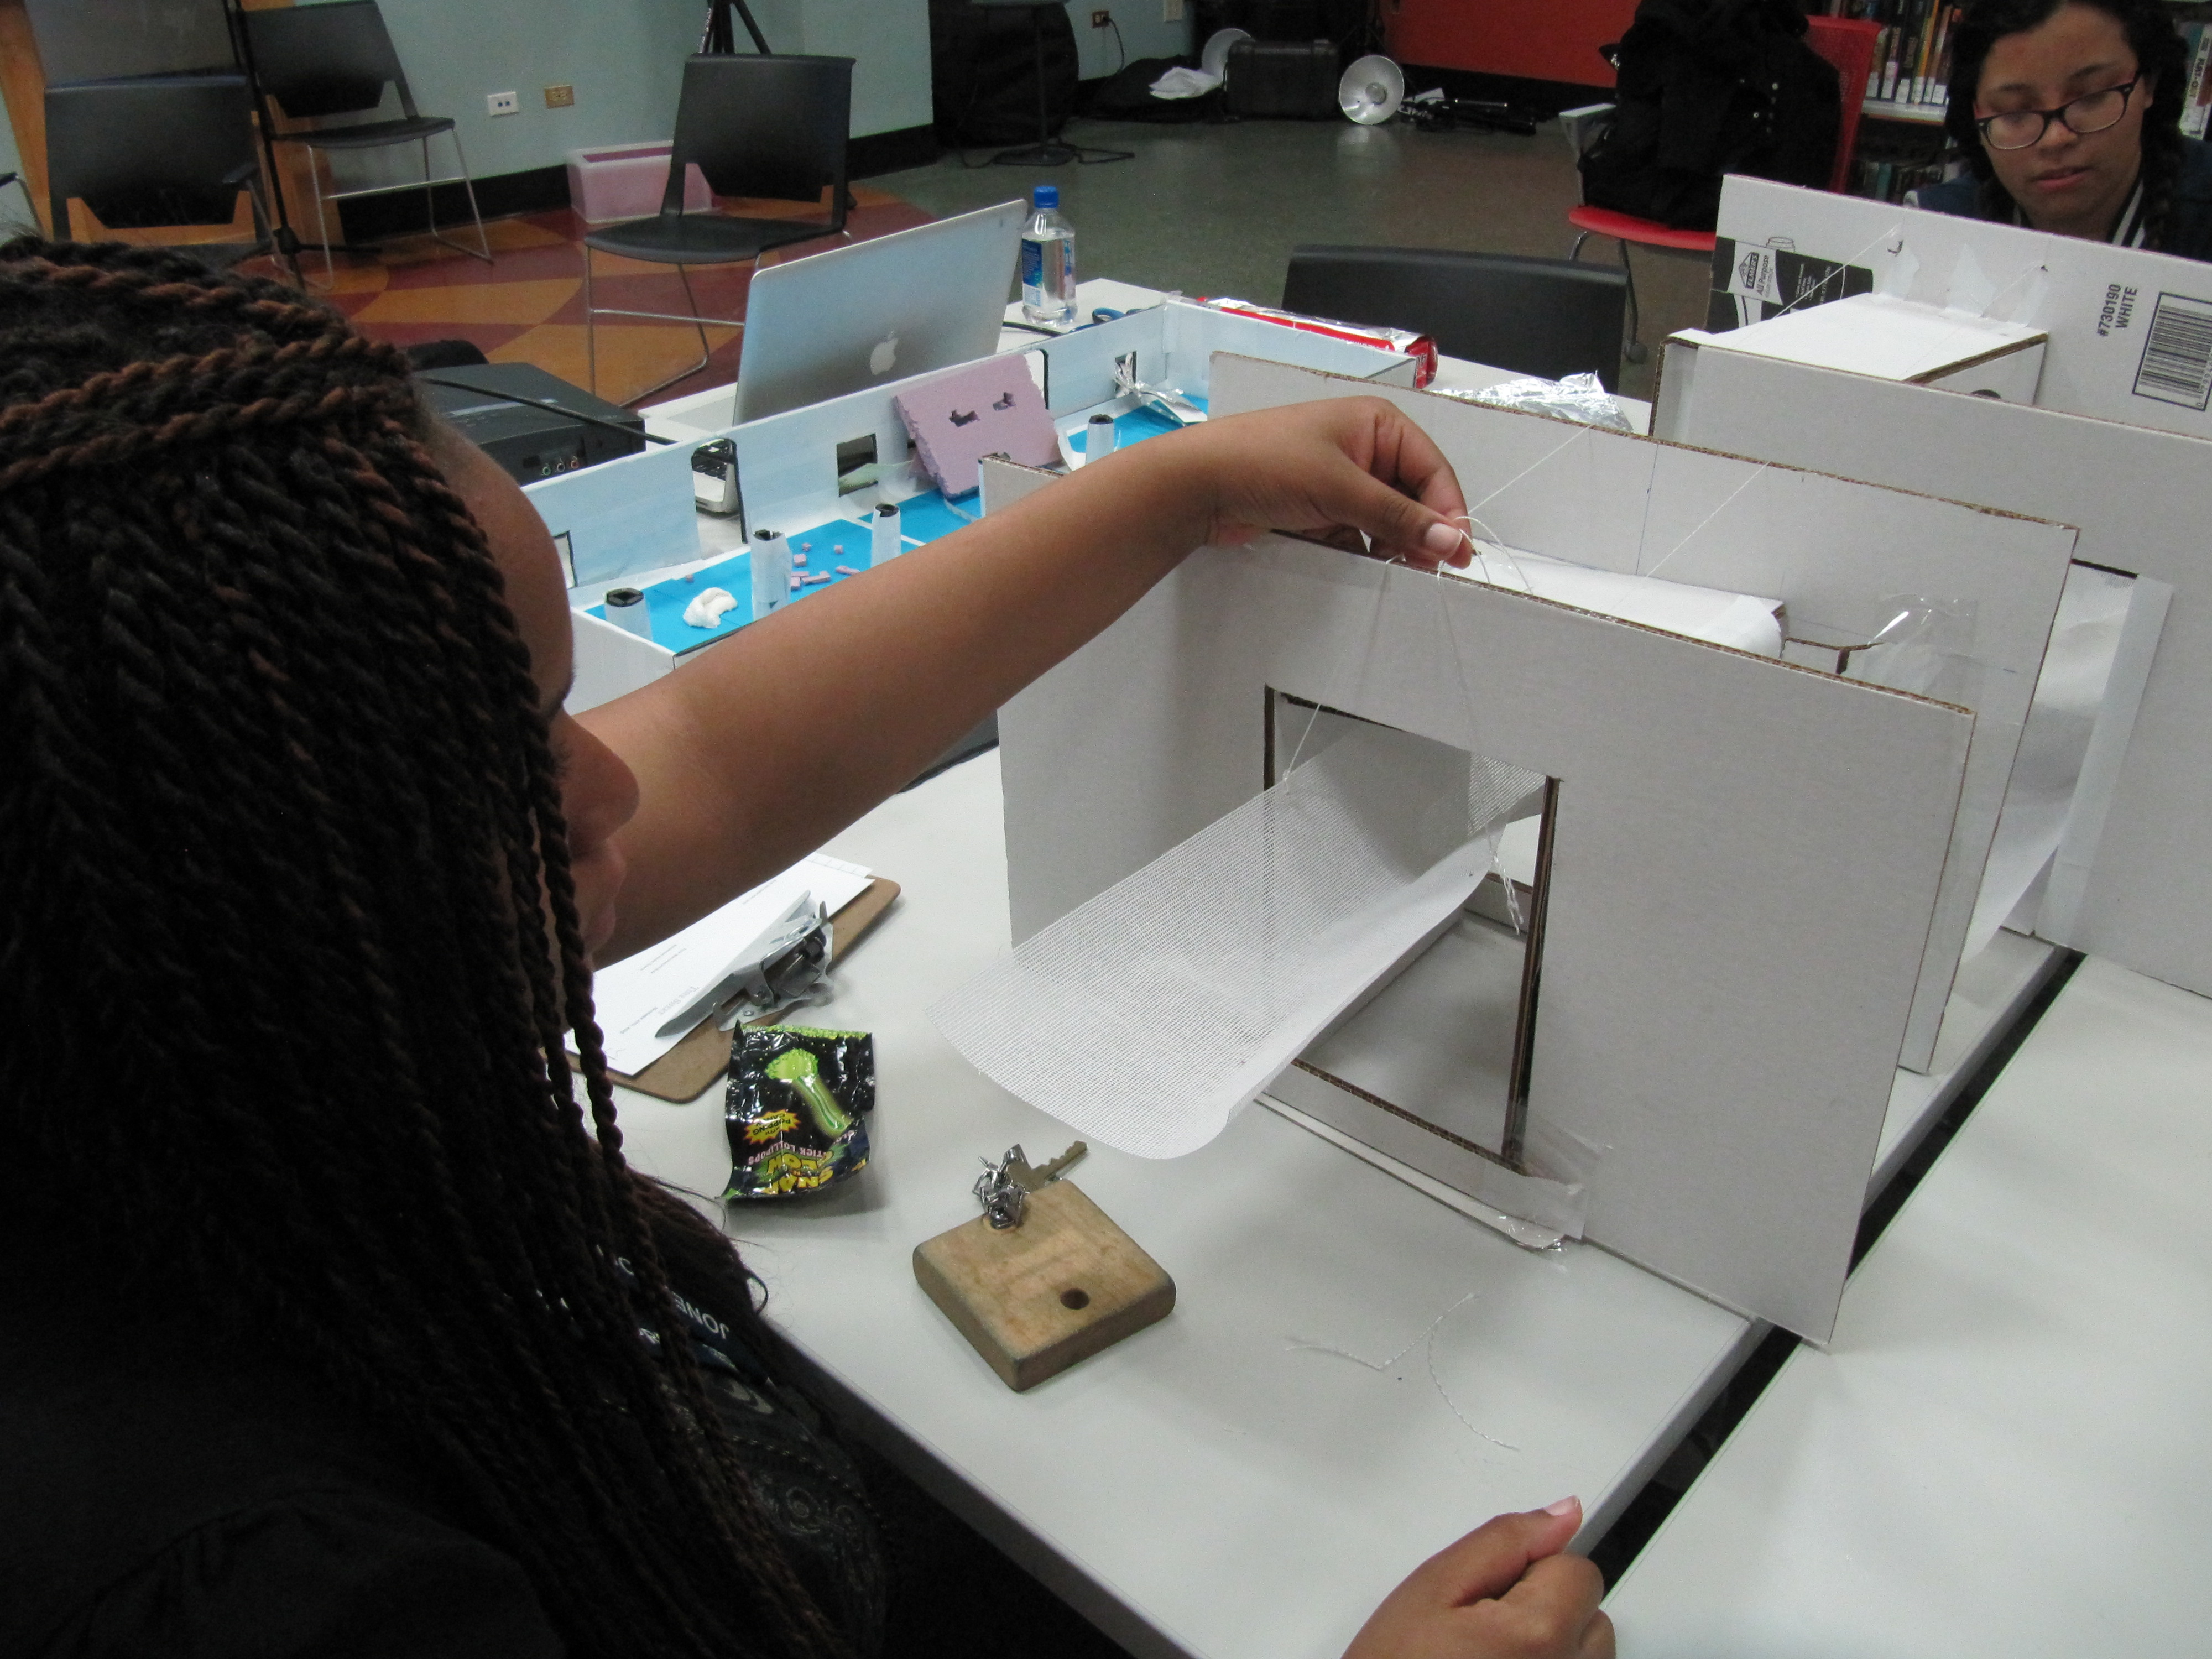 Physical model using materials